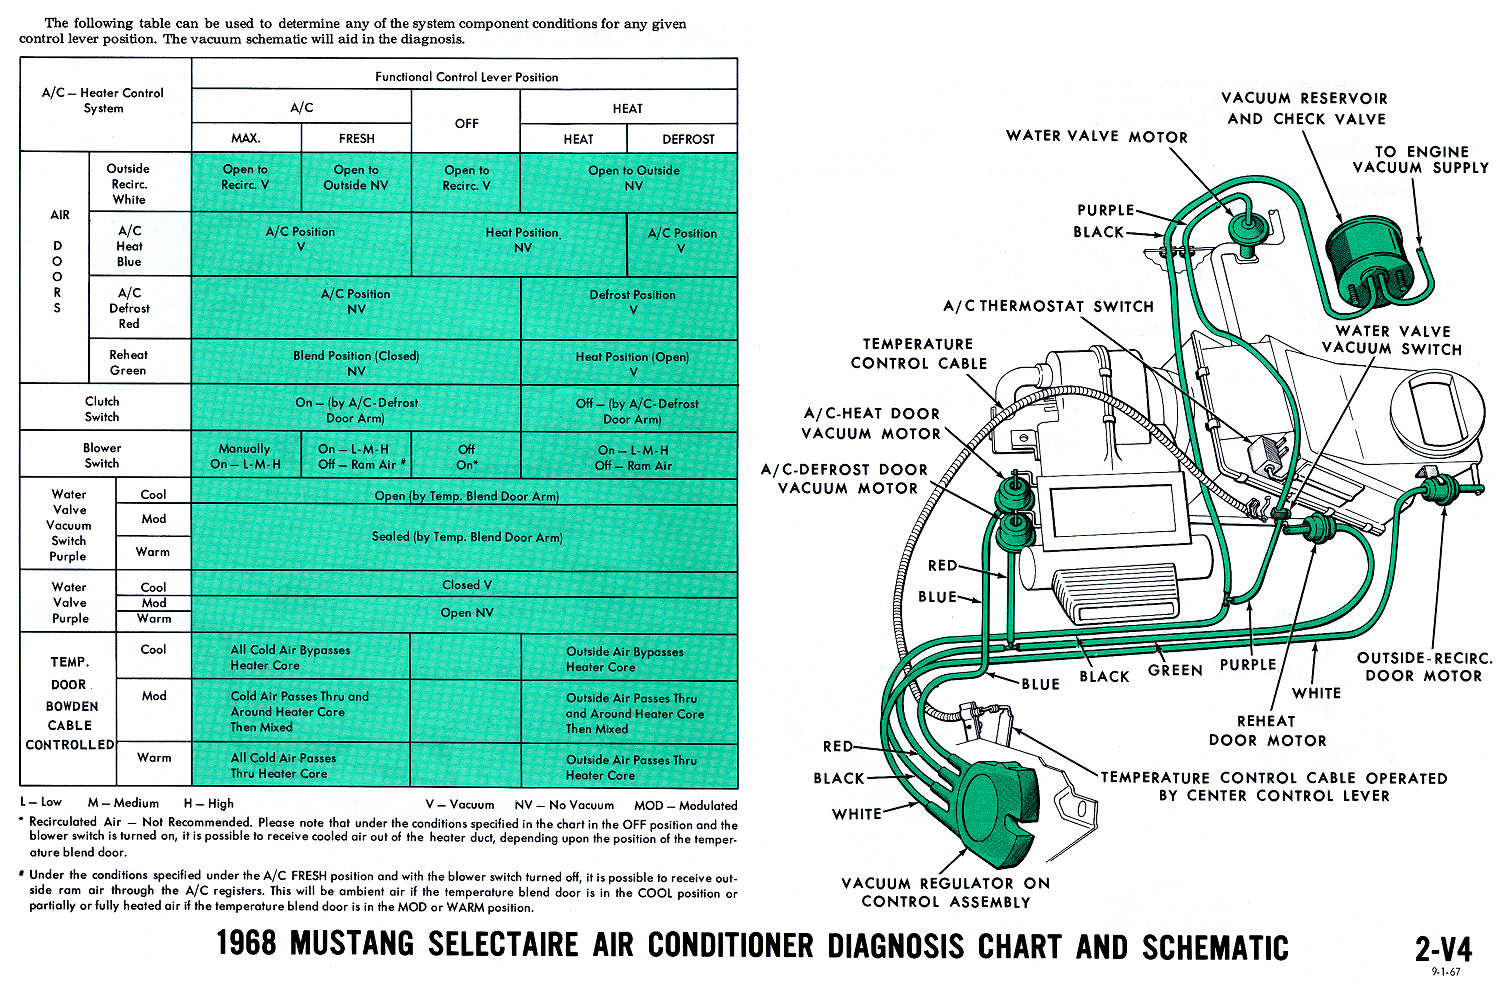 1968 Mustang Vacuum Diagrams Evolving Software. Air Conditioner Diagnostic Chart And Schematic. Wiring. 1969 Mustang Engine Vacuum Diagram At Scoala.co